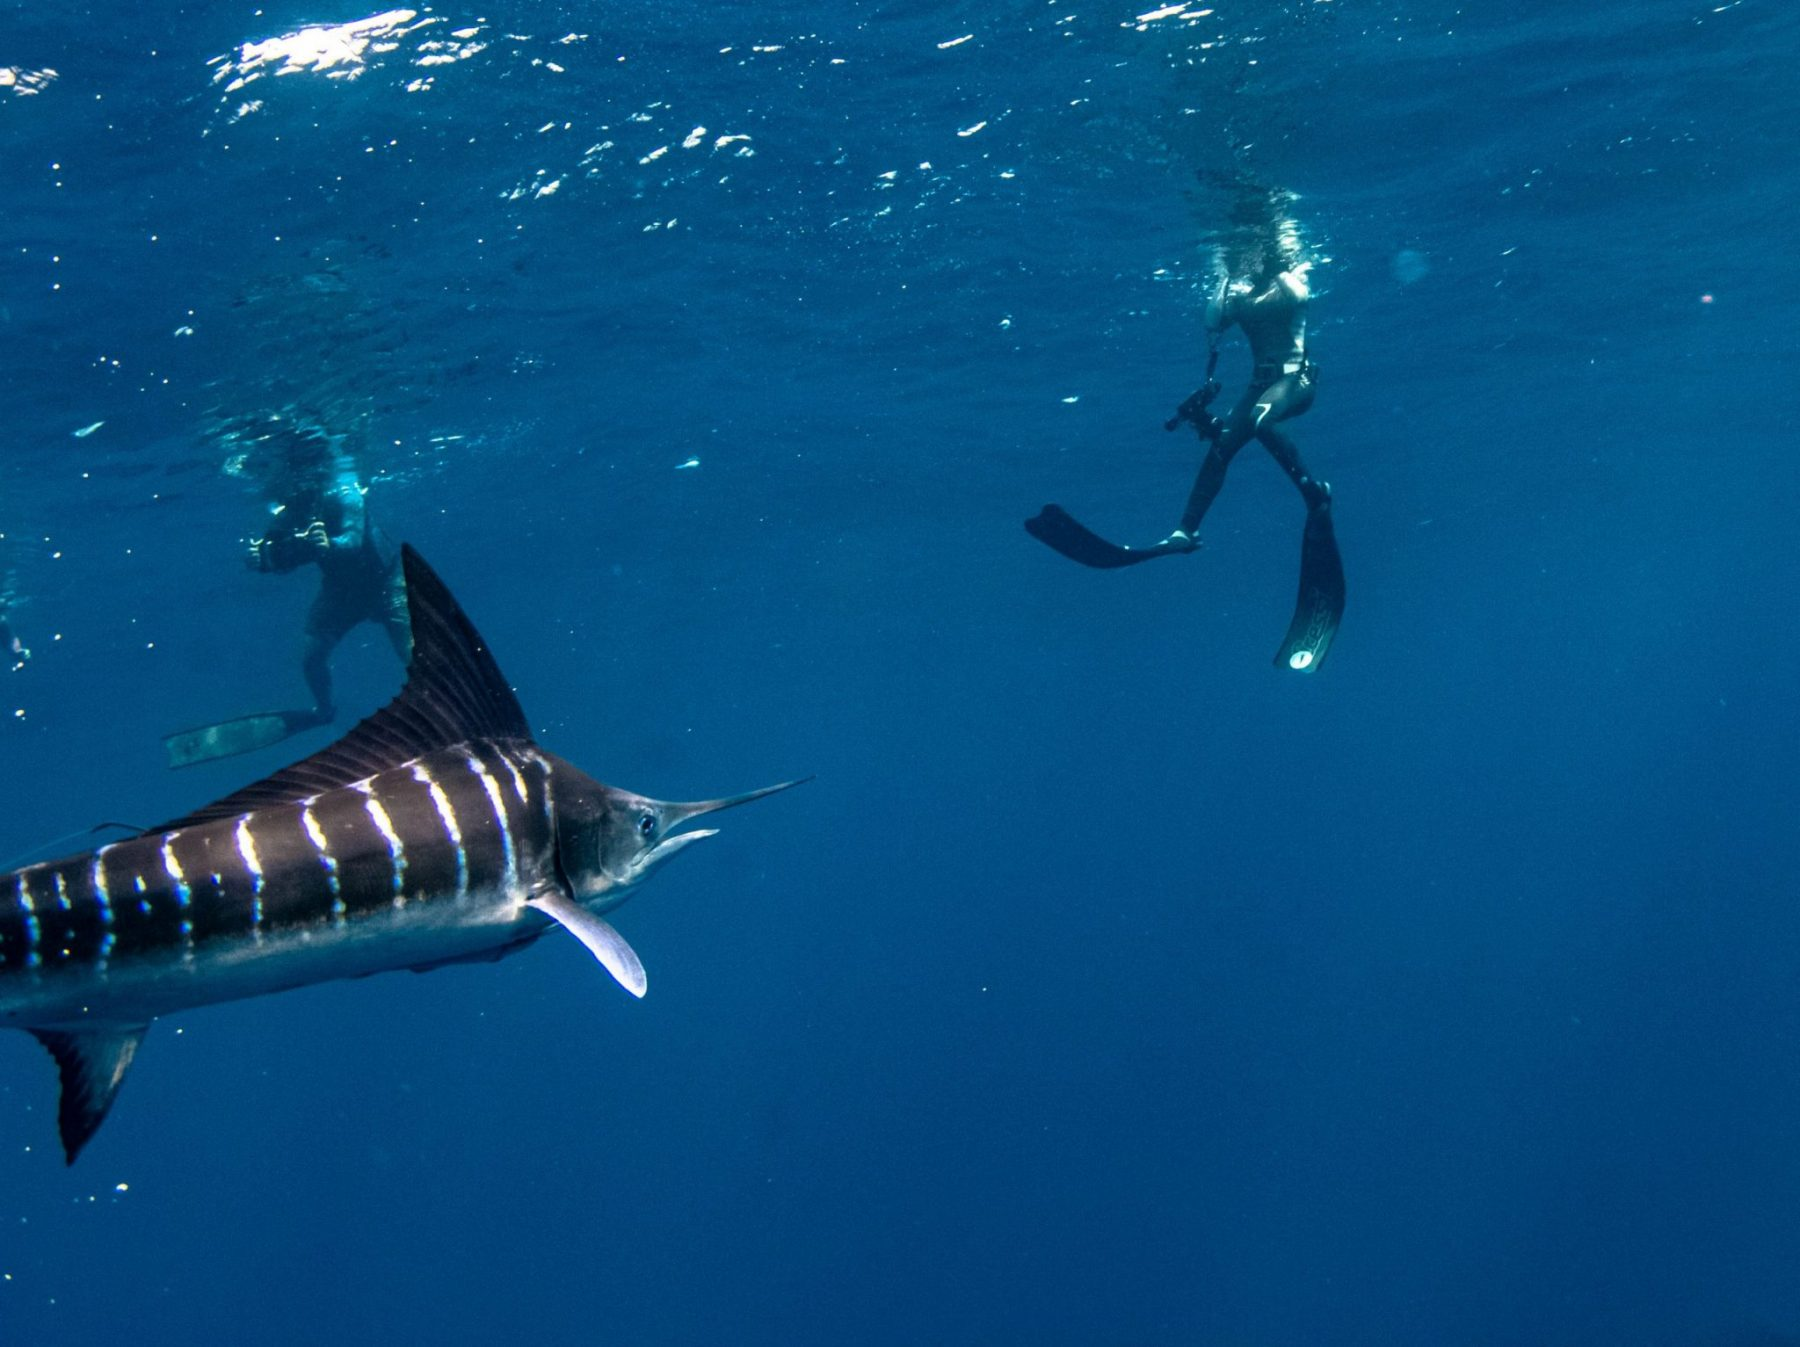 Swimming with Striped Marlins in Baja California Mexico